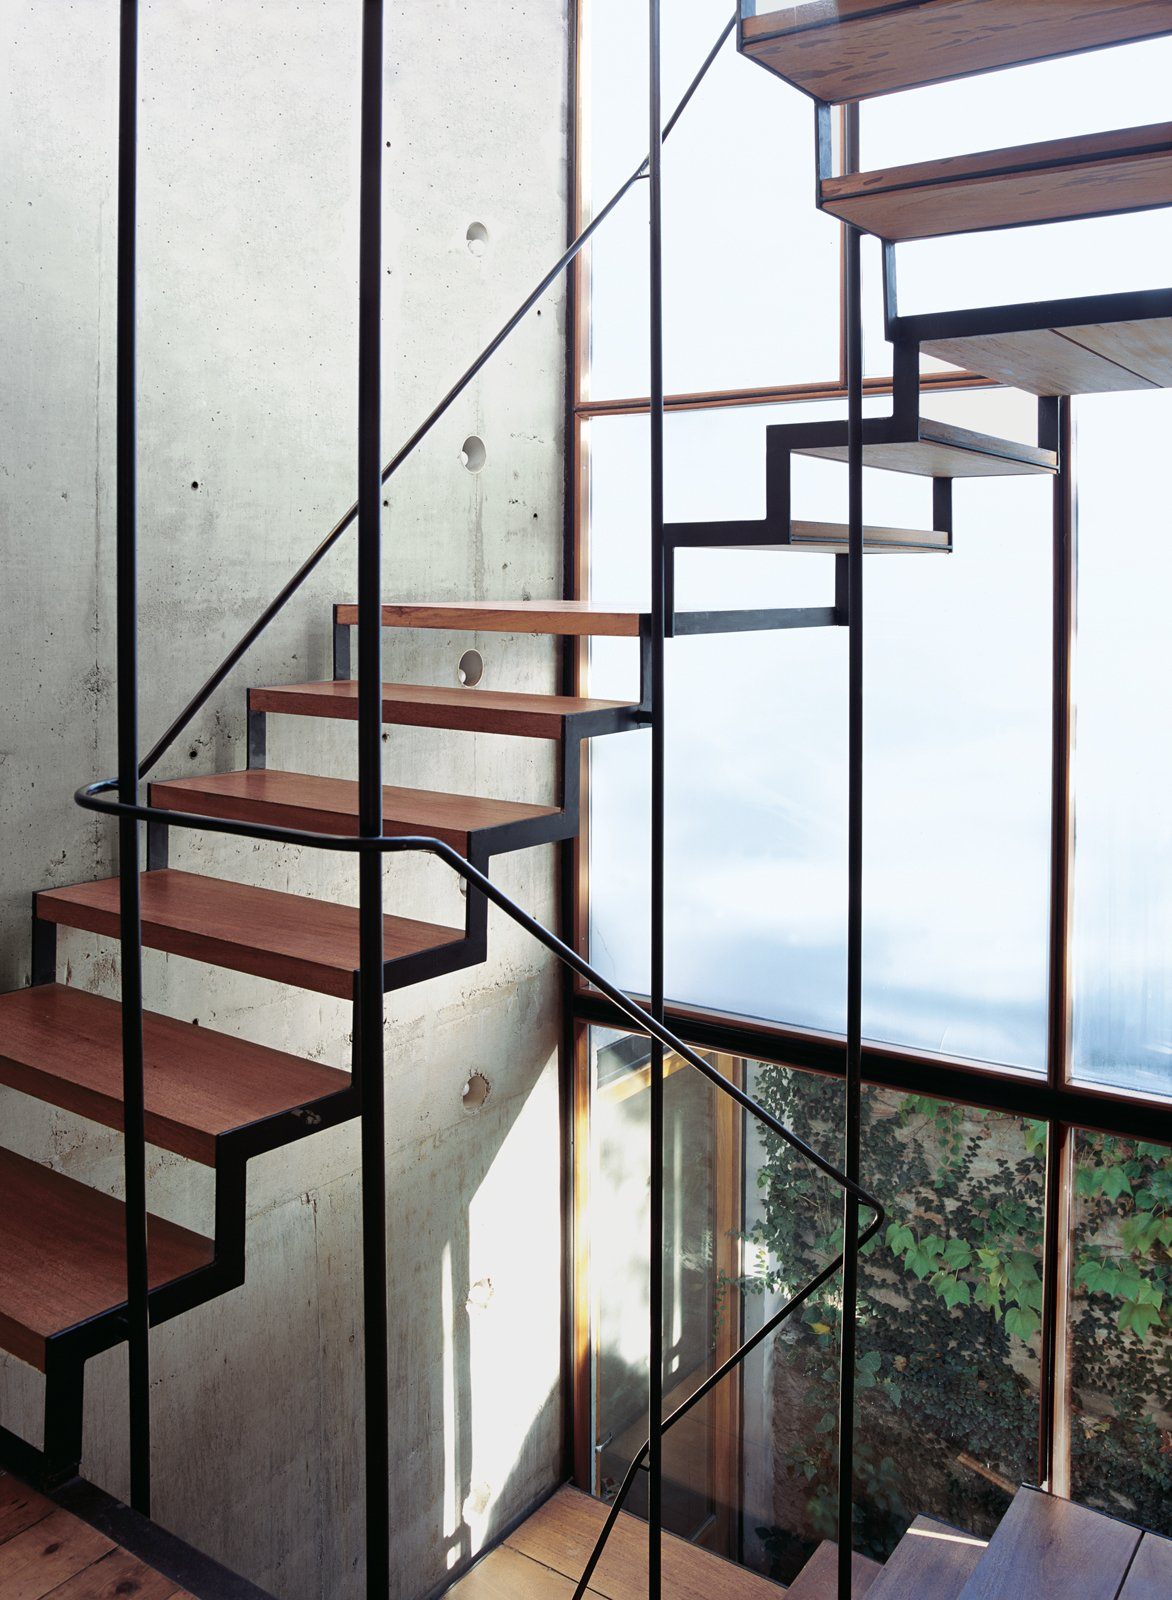 The wood-and-steel open staircase wends its way up three stories, supported by a concrete structural wall embedded with PVC tubes and bare lightbulbs. Tagged: Staircase, Metal Railing, and Wood Tread.  190+ Best Modern Staircase Ideas by Dwell from Net Assets